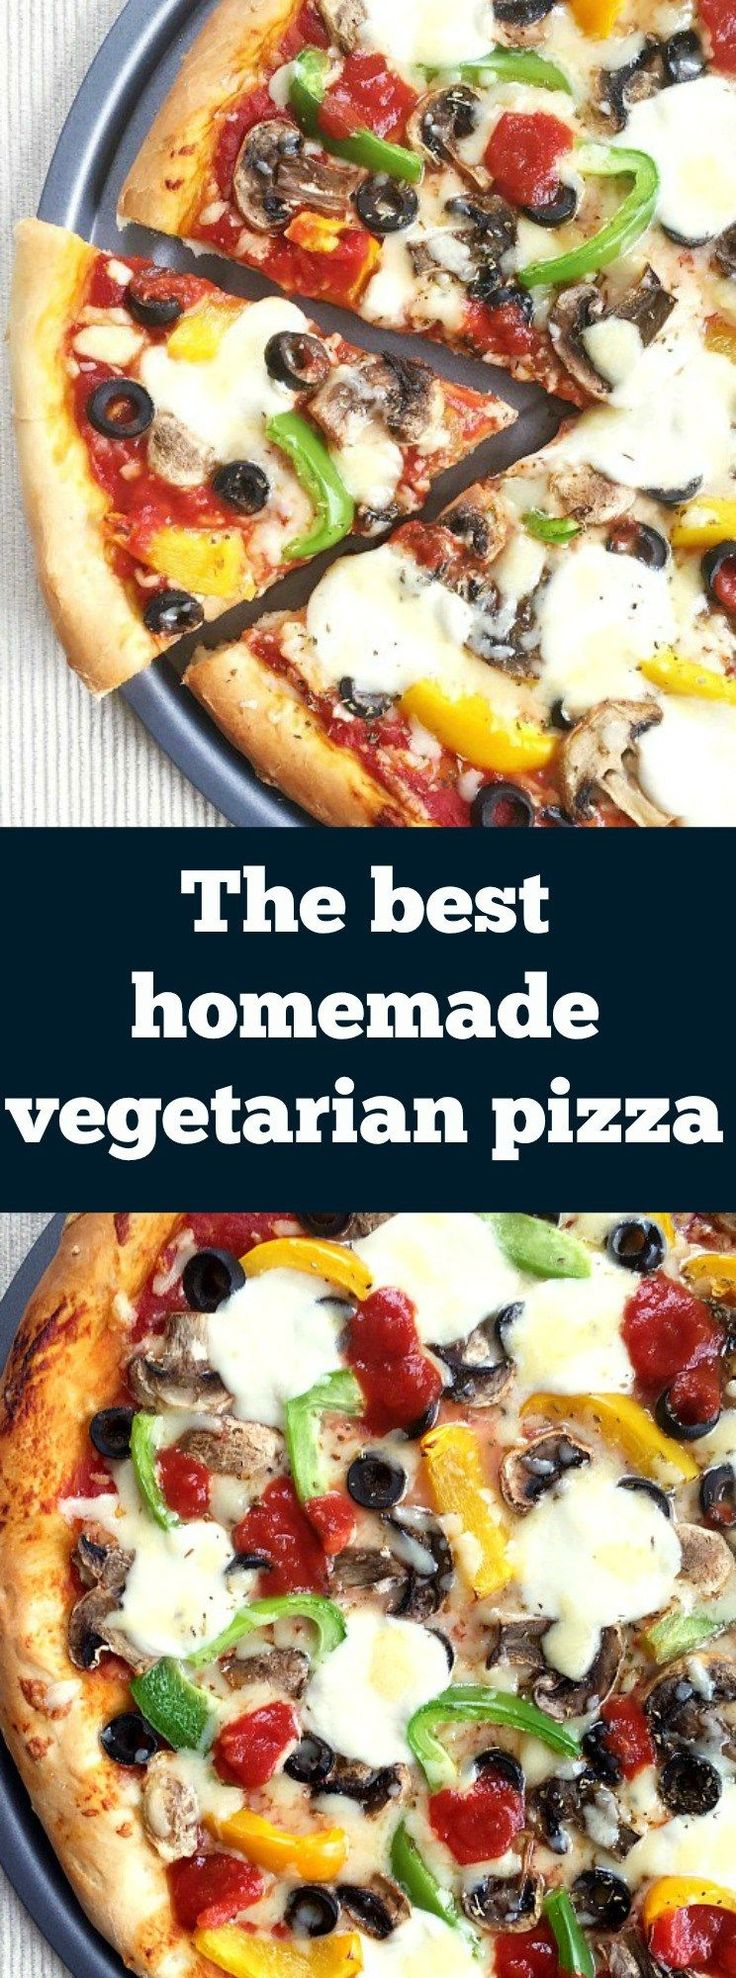 The best homemade vegetarian pizza with mushrooms, peppers and black olives. And cheese, loads of cheese. An easy pizza recipe with a perfect crust all the time.